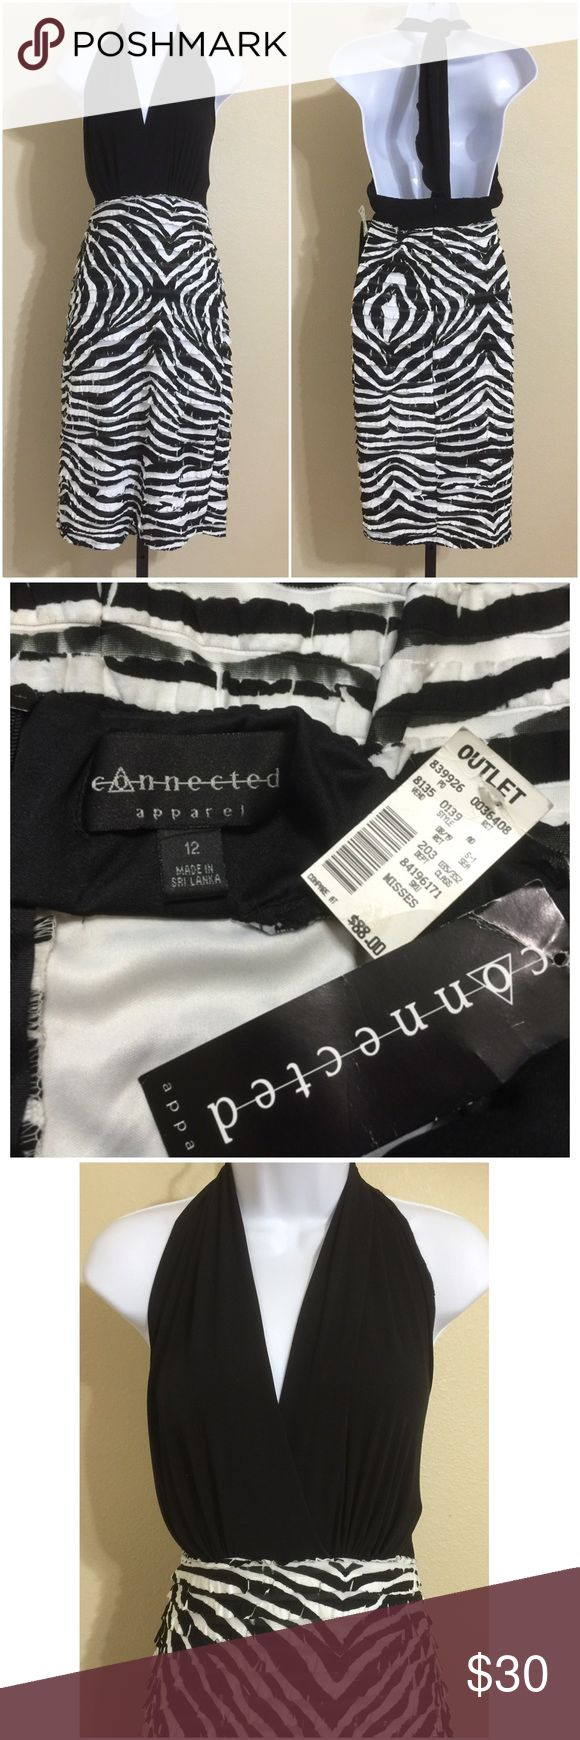 Connected Apparel Dress Size 12 Connected Apparel Women's Stretch, Body-Con Dress Size 12 Black & White Colors Tiered Ruffled Halter Strap Lightly Padded Bust Lined Skirt Portion Rear Zip Semi-Striped Skirt Portion Hand Wash Self 97% Polyester 3% Spandex Contrast 96% Polyester 4% Spandex Lining 100% Polyester Bust Approx. 36 Inches Waist Approx. 30 Inches Hips Approx. 38 Inches Length Approx. 38 Inches Sweep Approx. 40 Inches Compare Measurements To Your Own Well Fitting Garment To Ensure A…